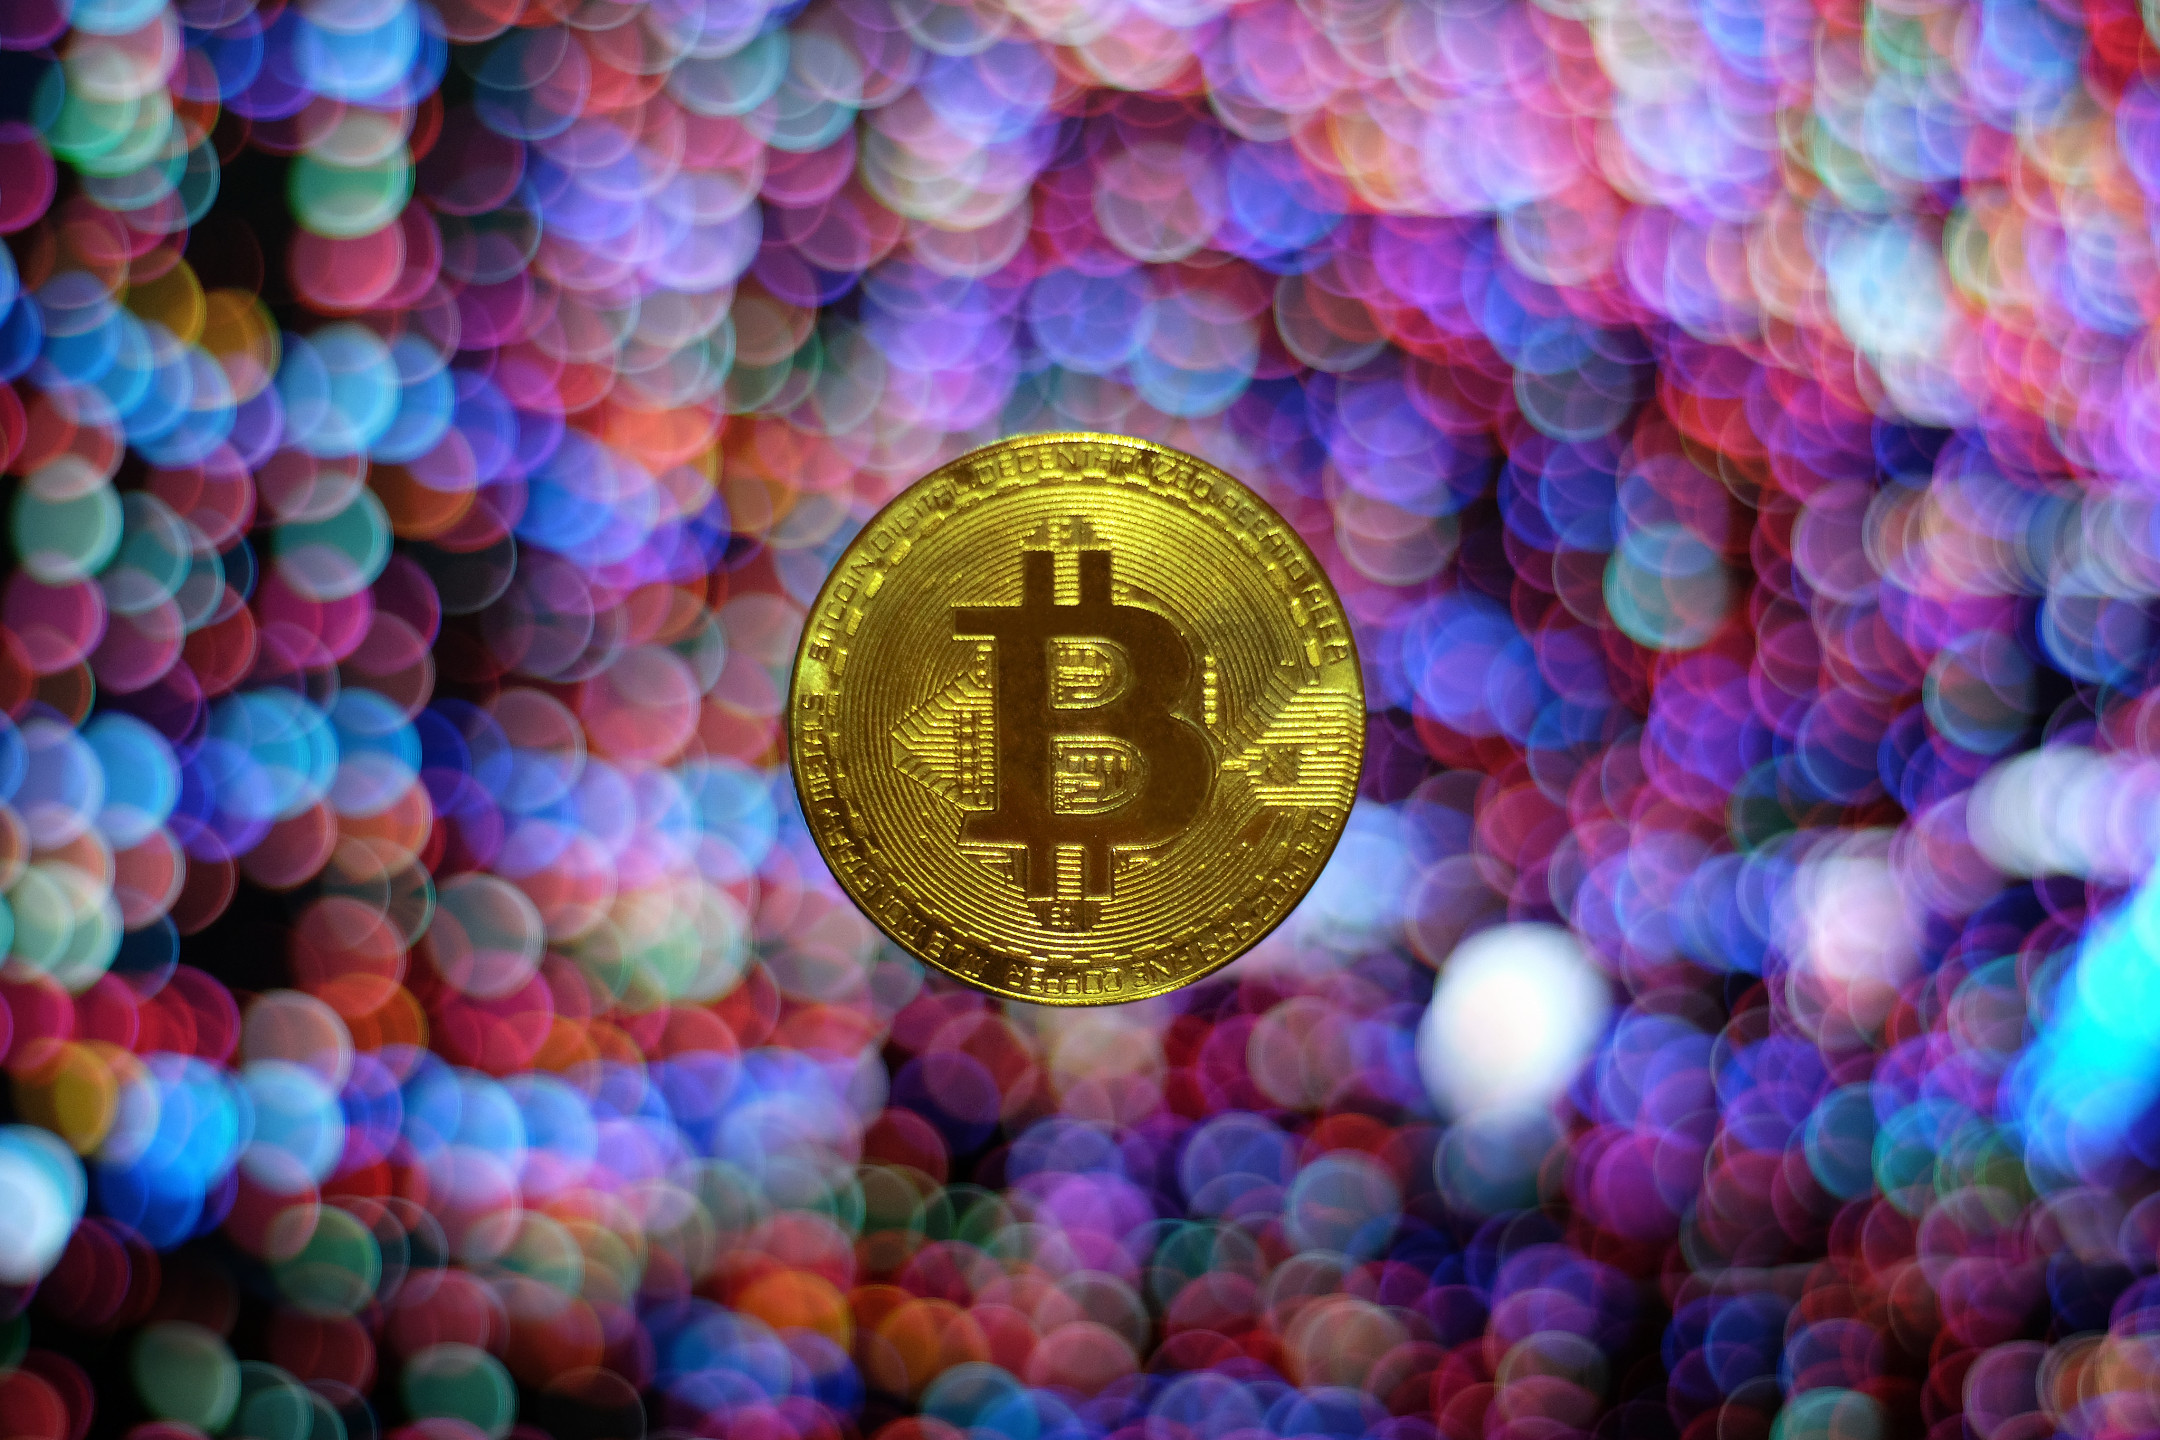 What scares the world of cryptocurrencies?